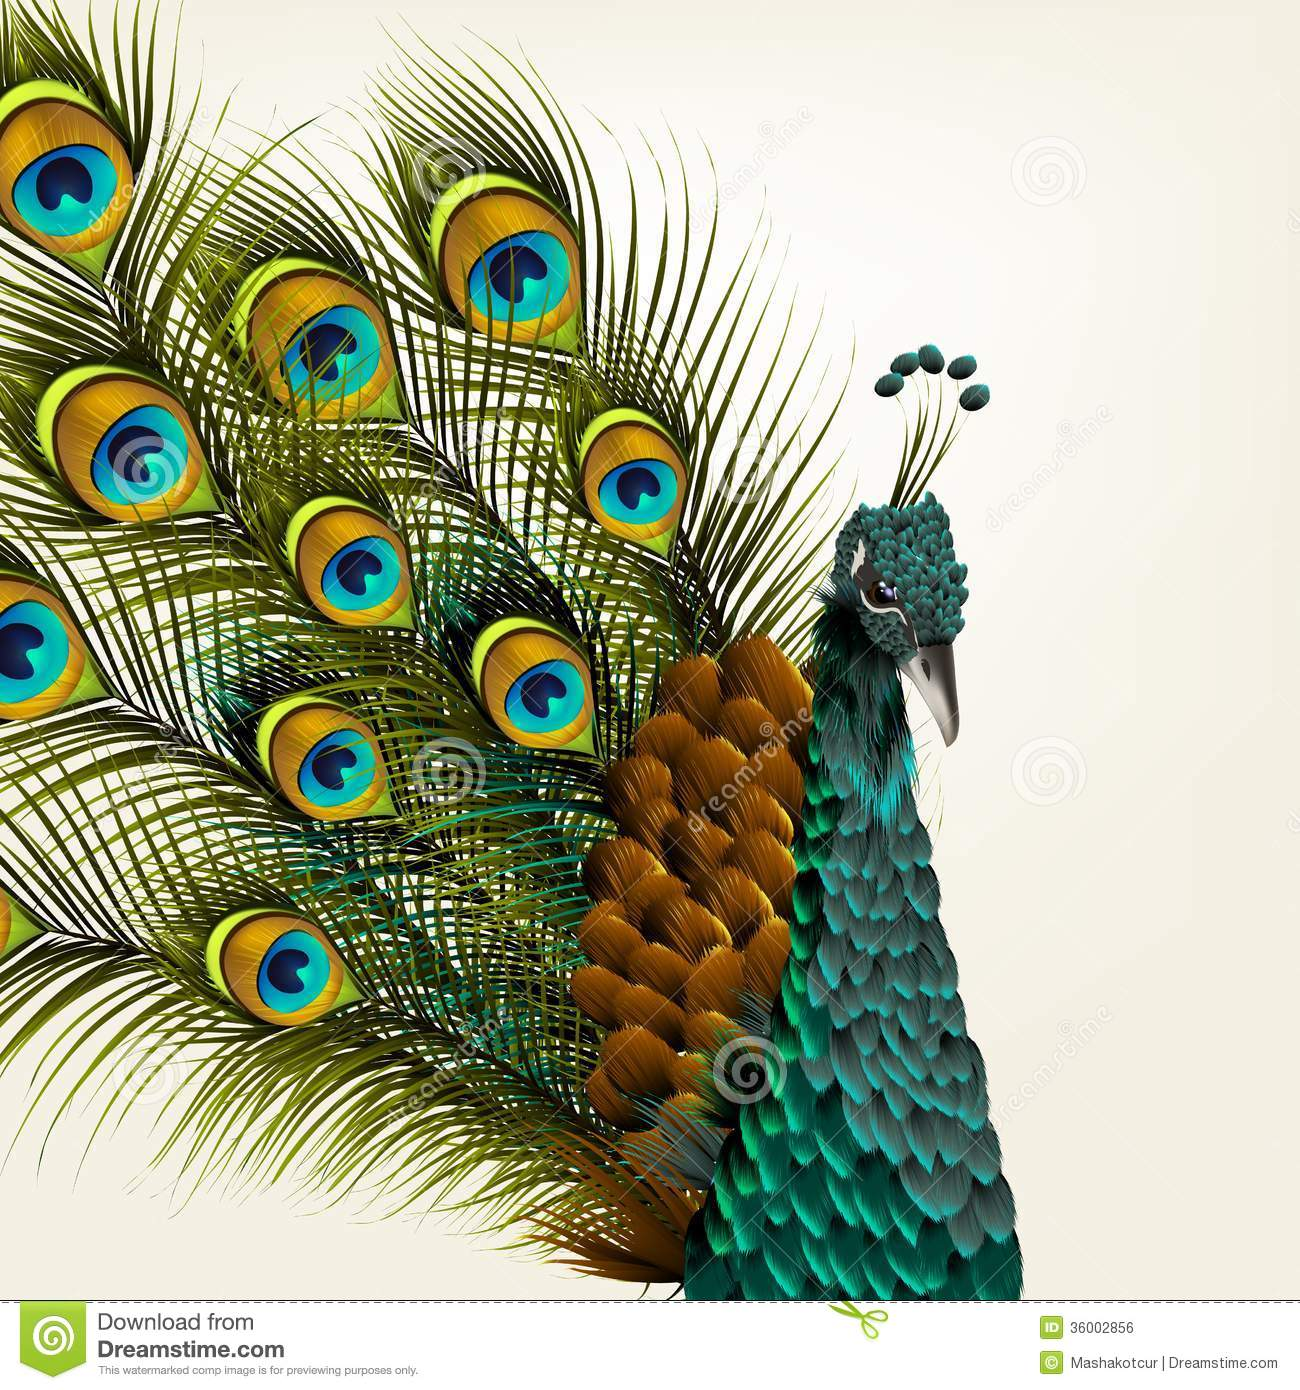 Cute Background With Vector Detailed Peacock On White For Design Royalty Free Stock Image